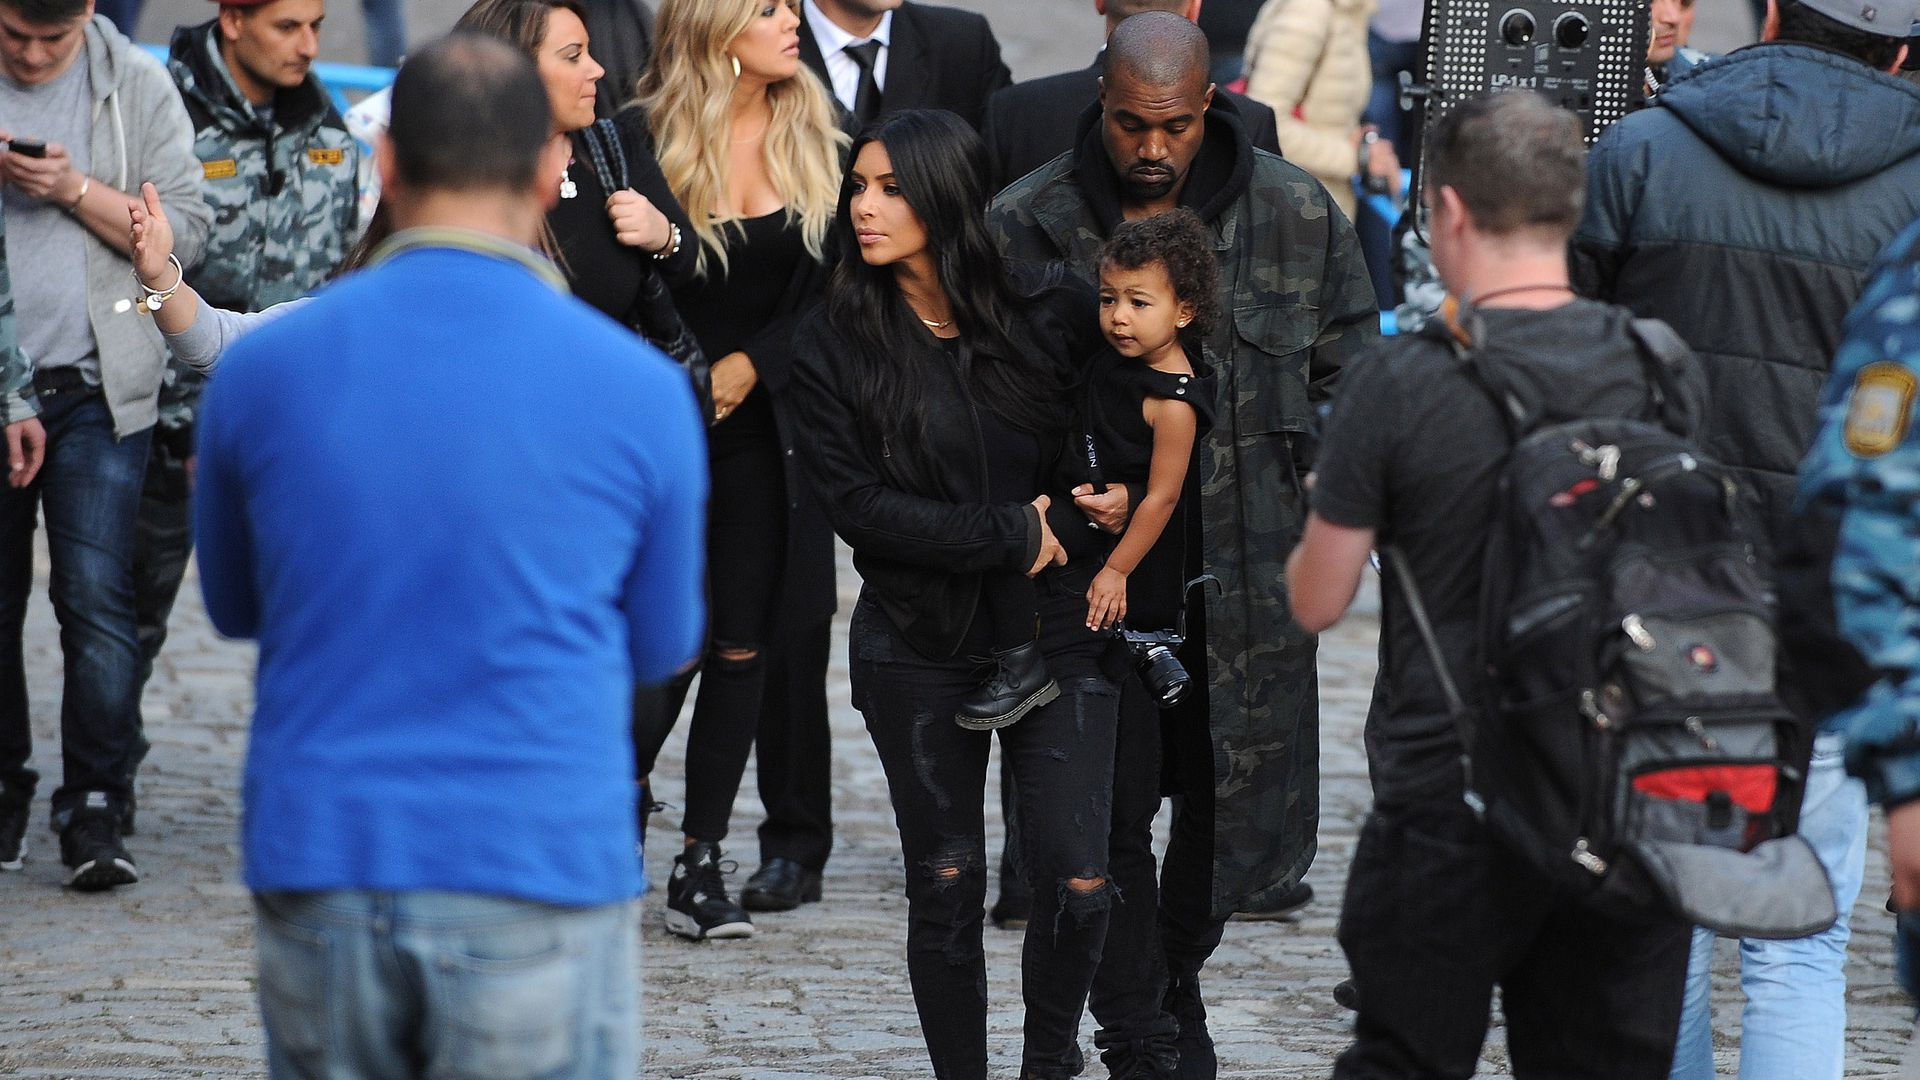 Kim Kardashian carrying her child with Kanye West behind her